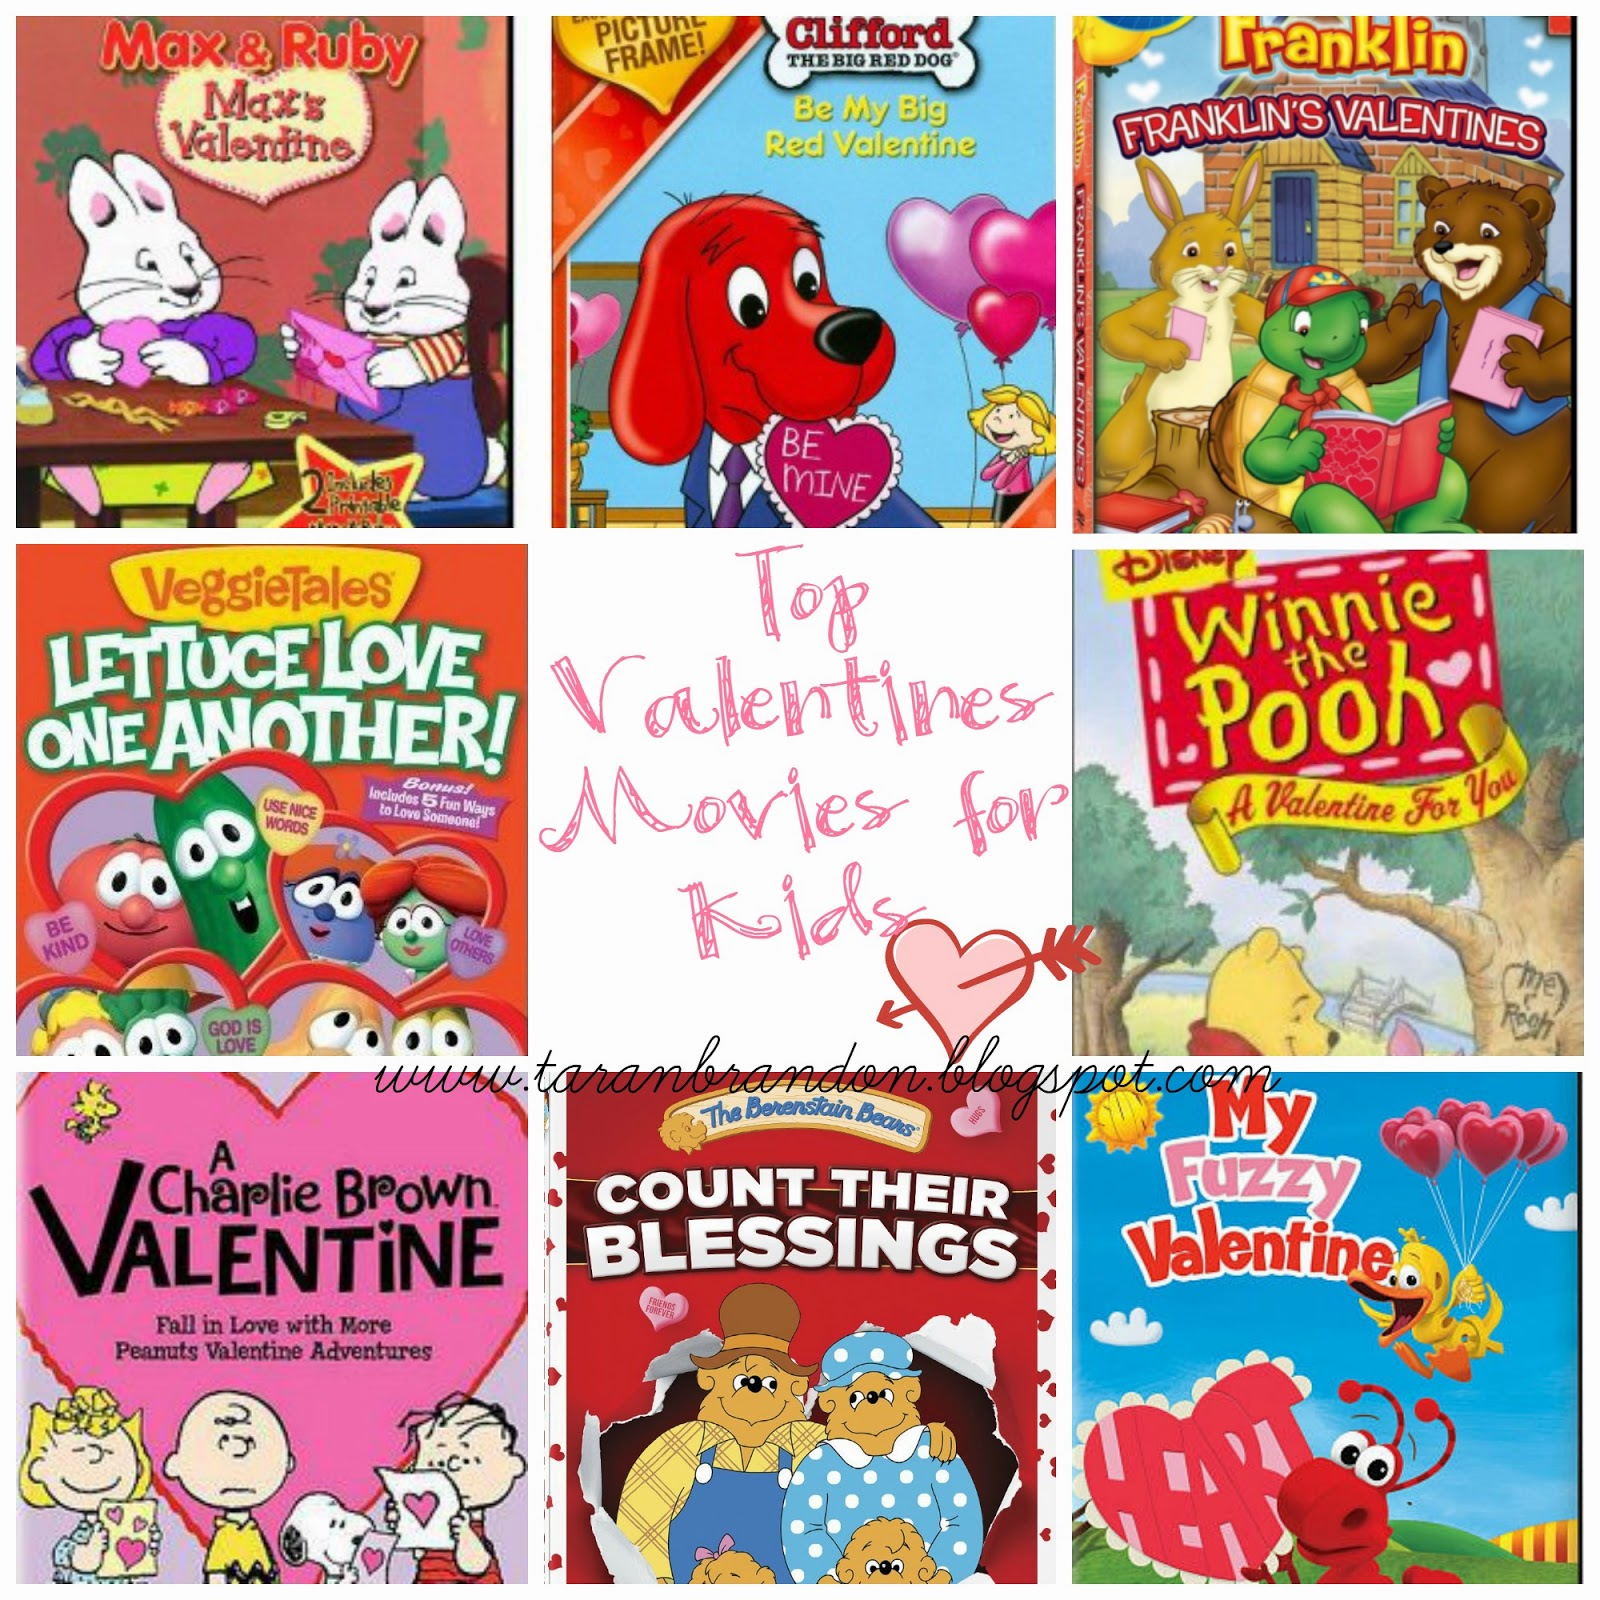 Franklin, Franklinu0027s Valentines//4.Veggie Tales, Lettuce Love One  Another//5.Winnie The Pooh, A Valentine For You//6. A Charlie Brown  Valentine//7.